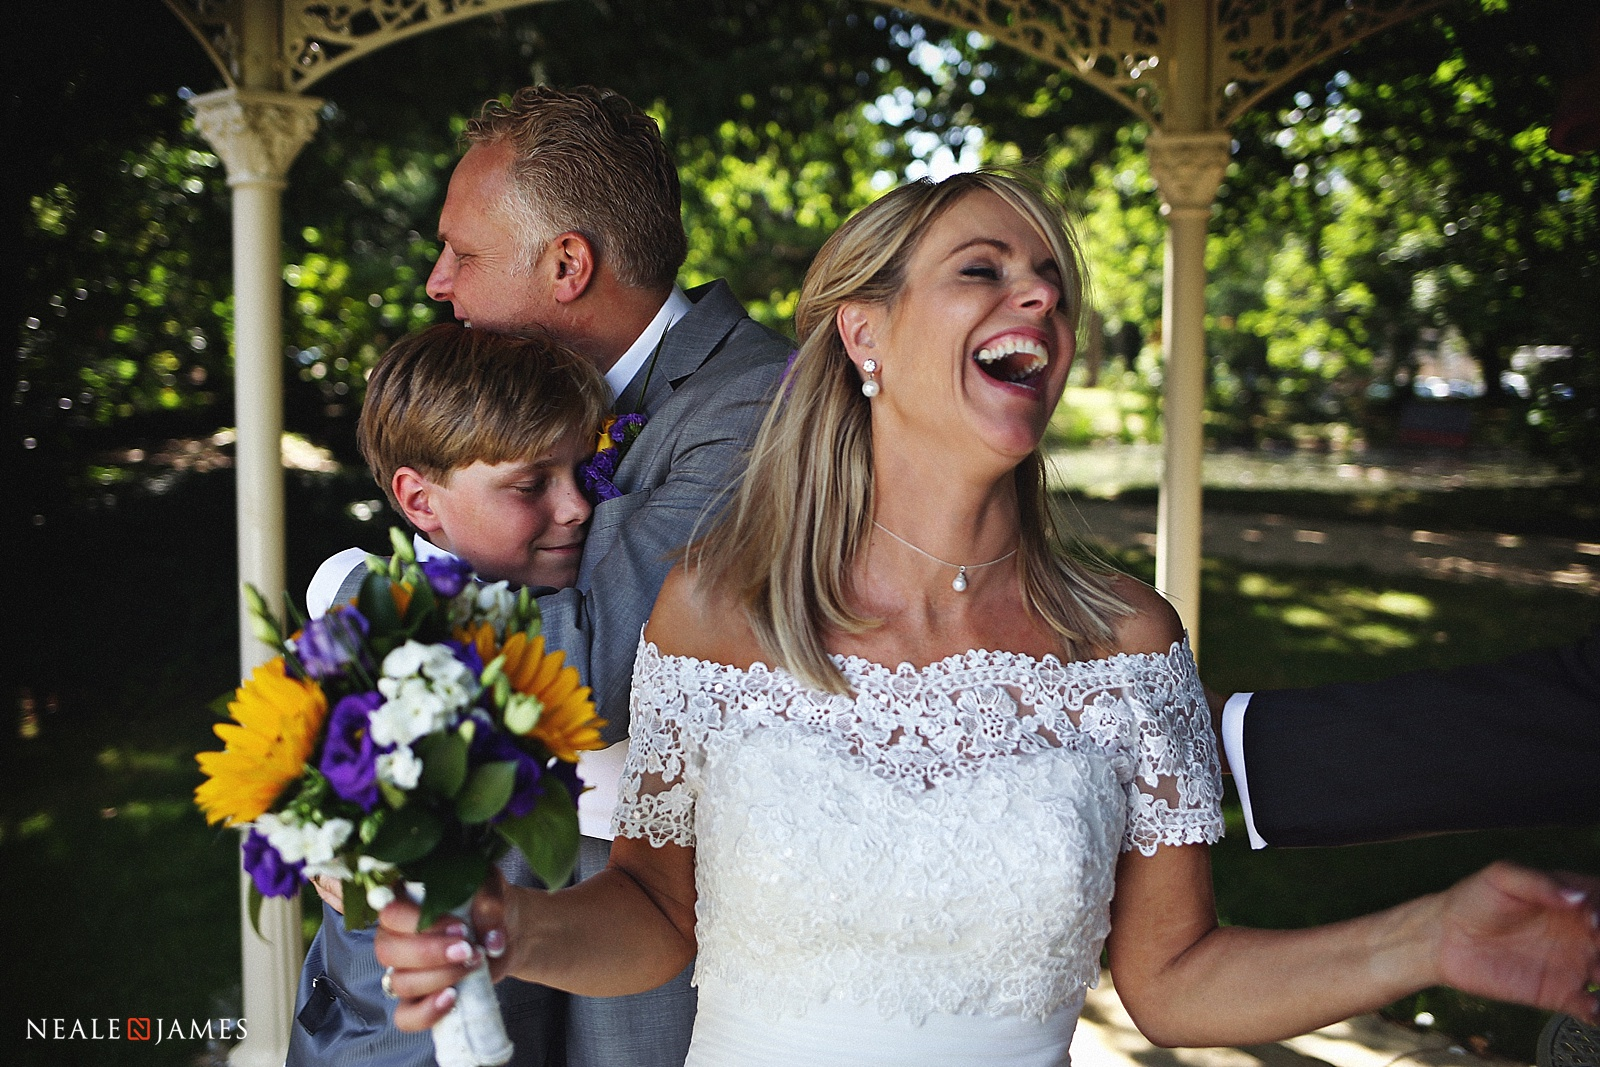 A mother laughing with joy at a wedding